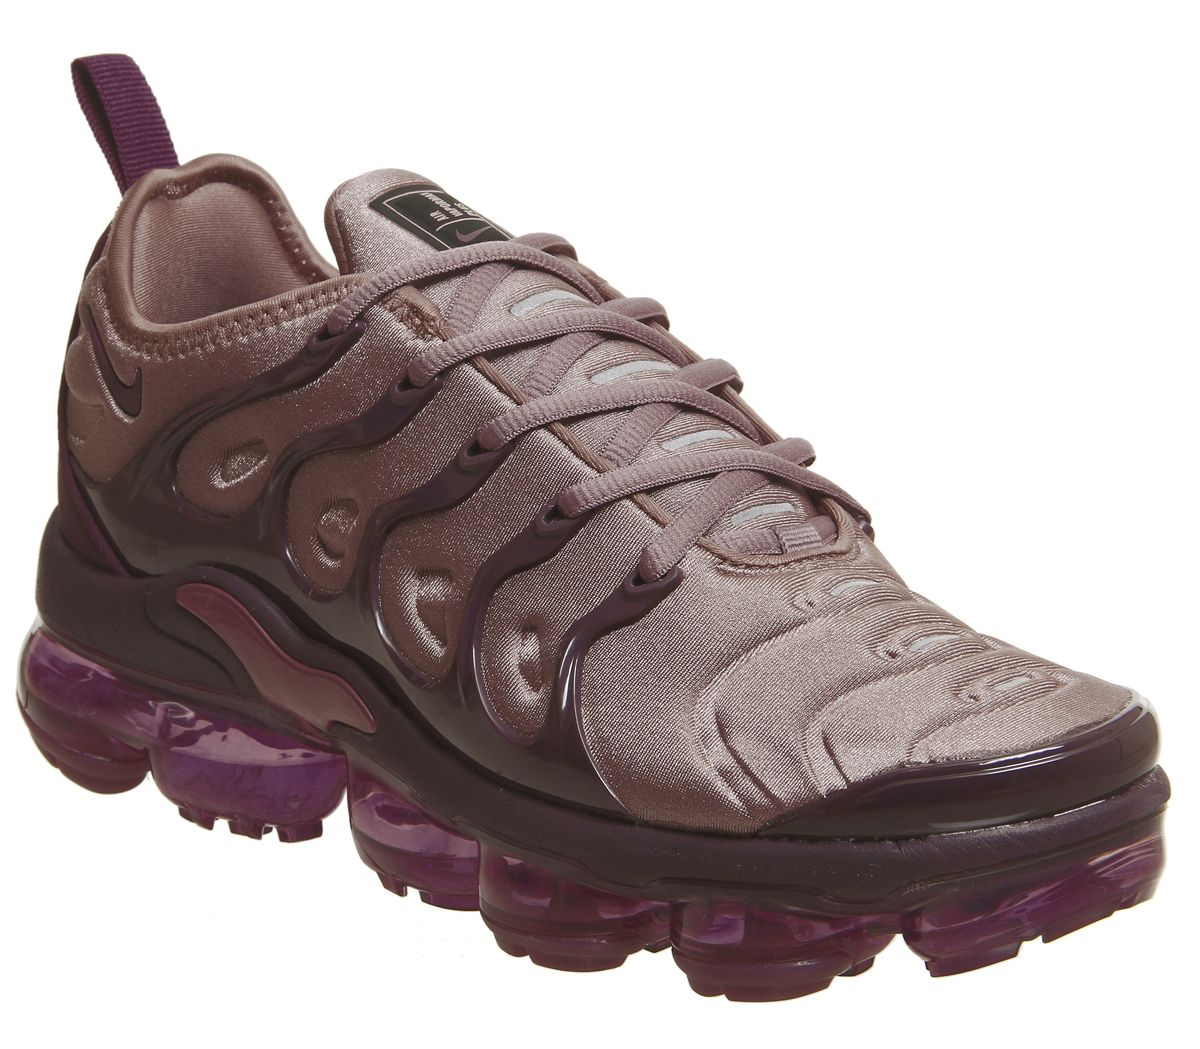 15d247f9c57 Nike Vapormax Air Vapormax Plus Trainers Smokey Mauve Bordeaux ...